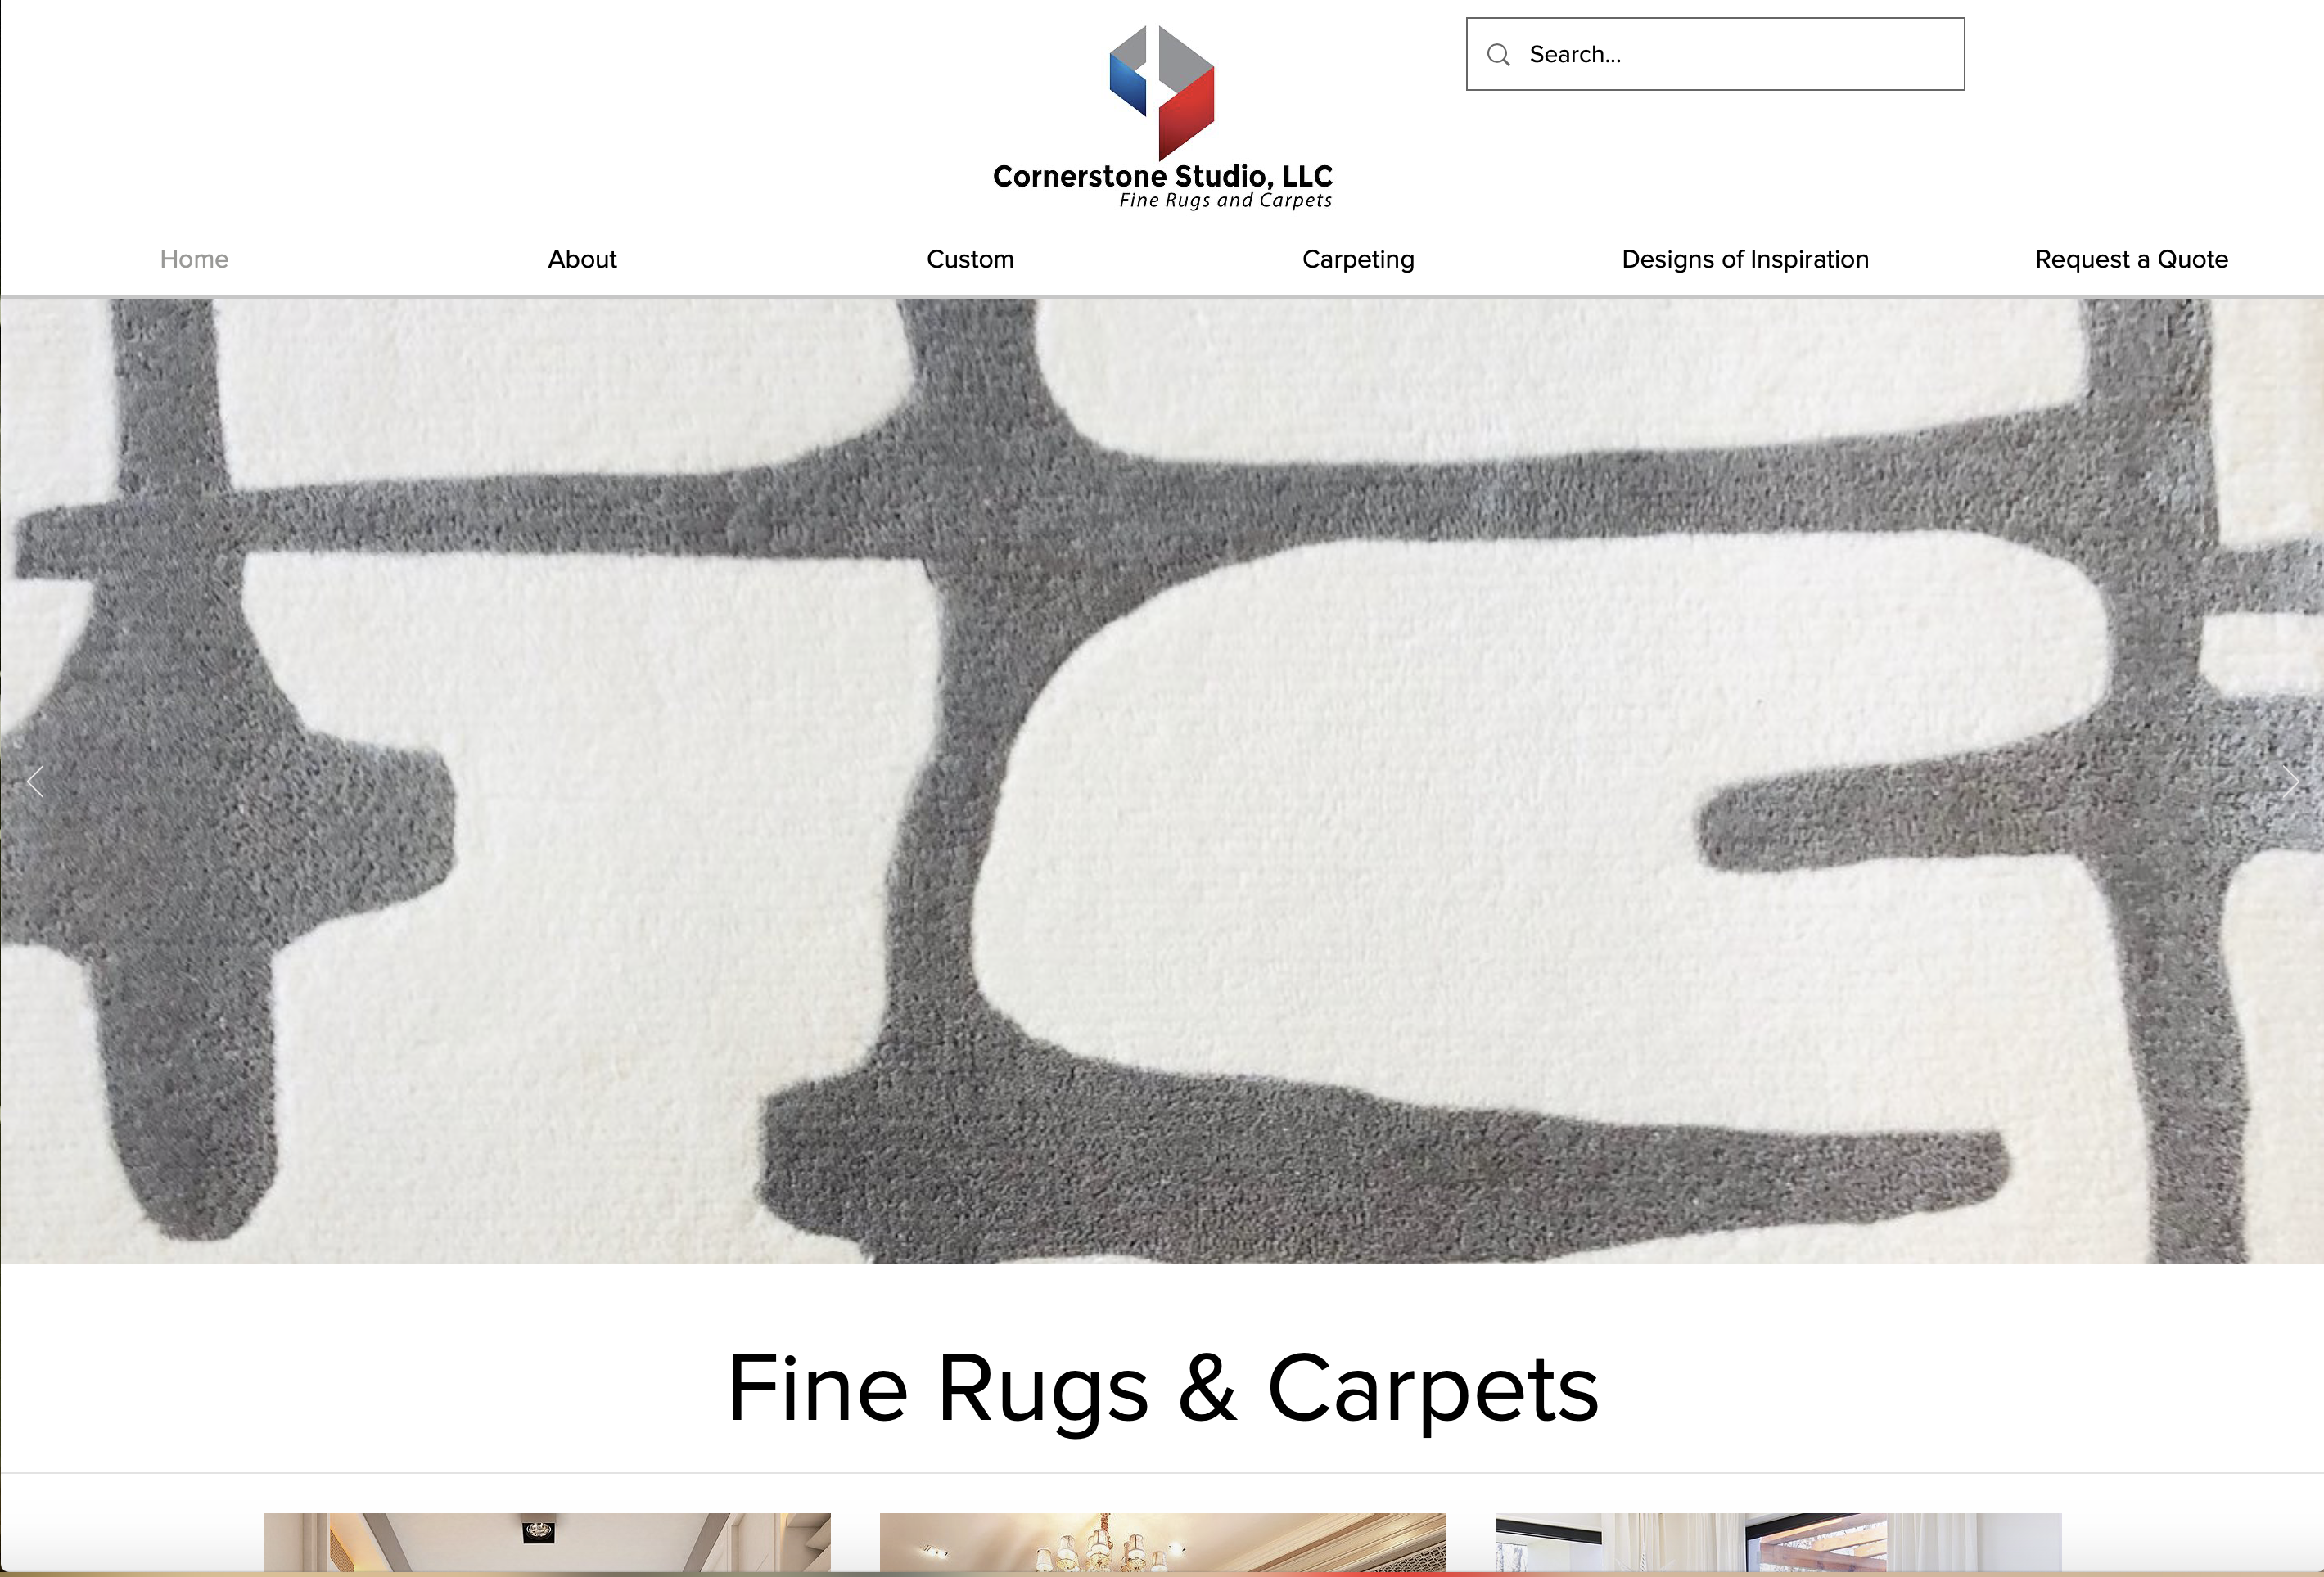 Cornerstone Studio Fine Rugs and Carpets